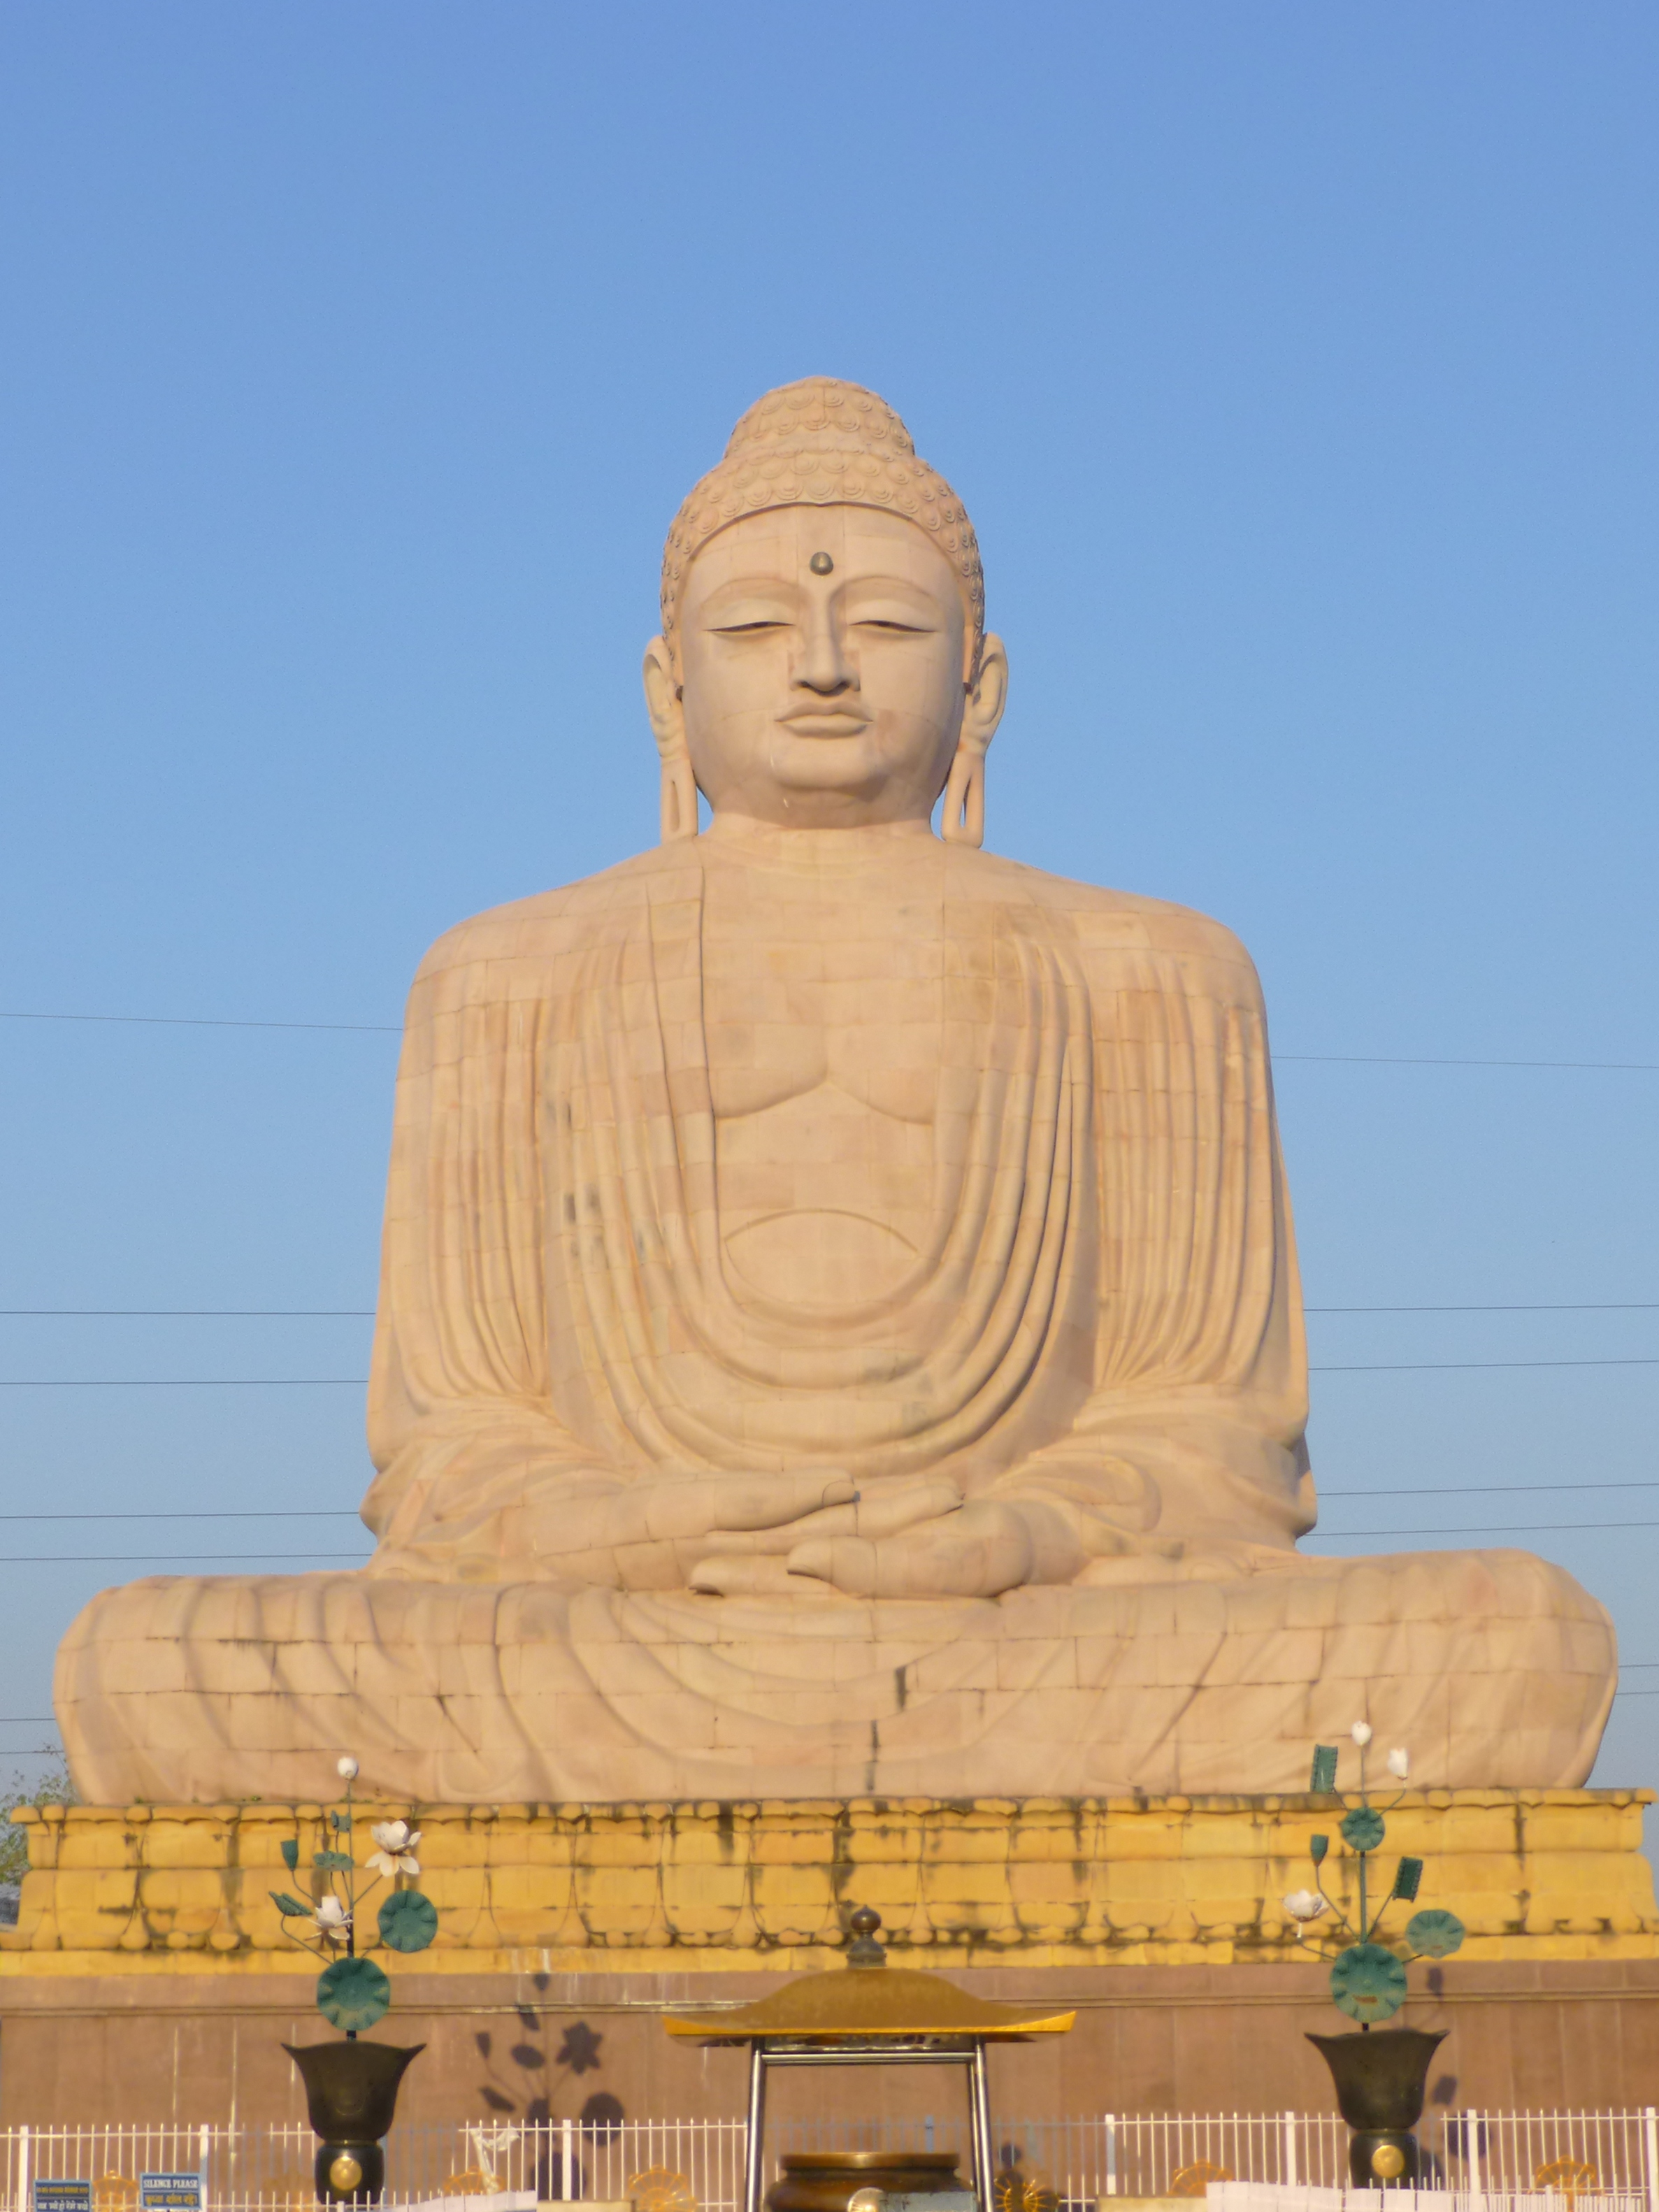 Picture of the Great Buddha of Bodh Gaya. Credit: Photo Dharma from Penang, Malaysia, [CC BY 2.0 ( http://creativecommons.org/licenses/by/2.0 )], via Wikimedia Commons.